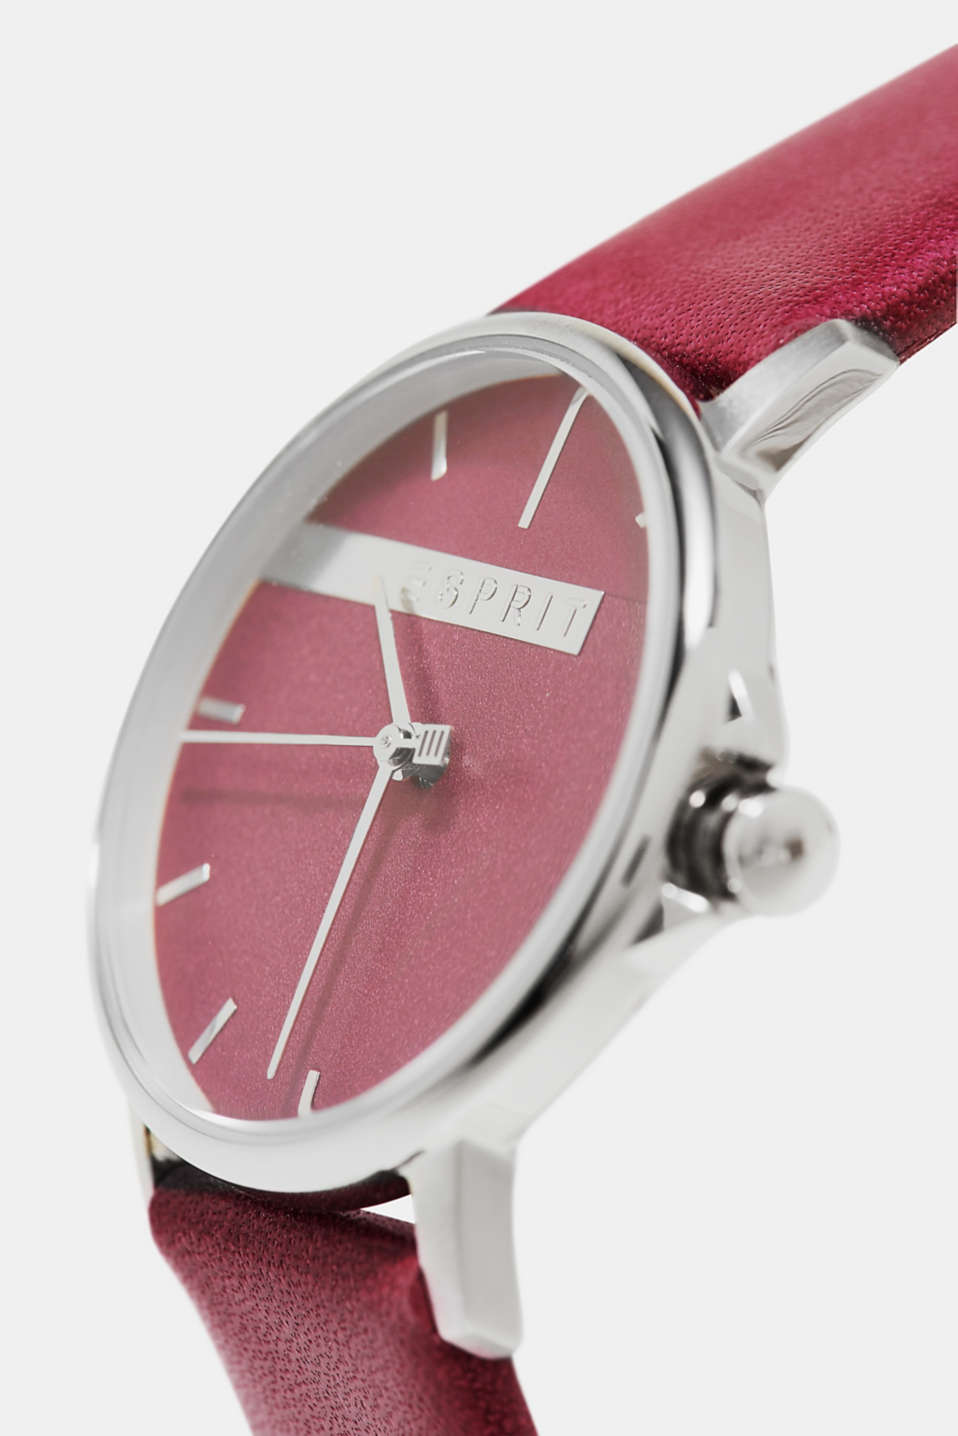 Stainless steel watch with a leather strap